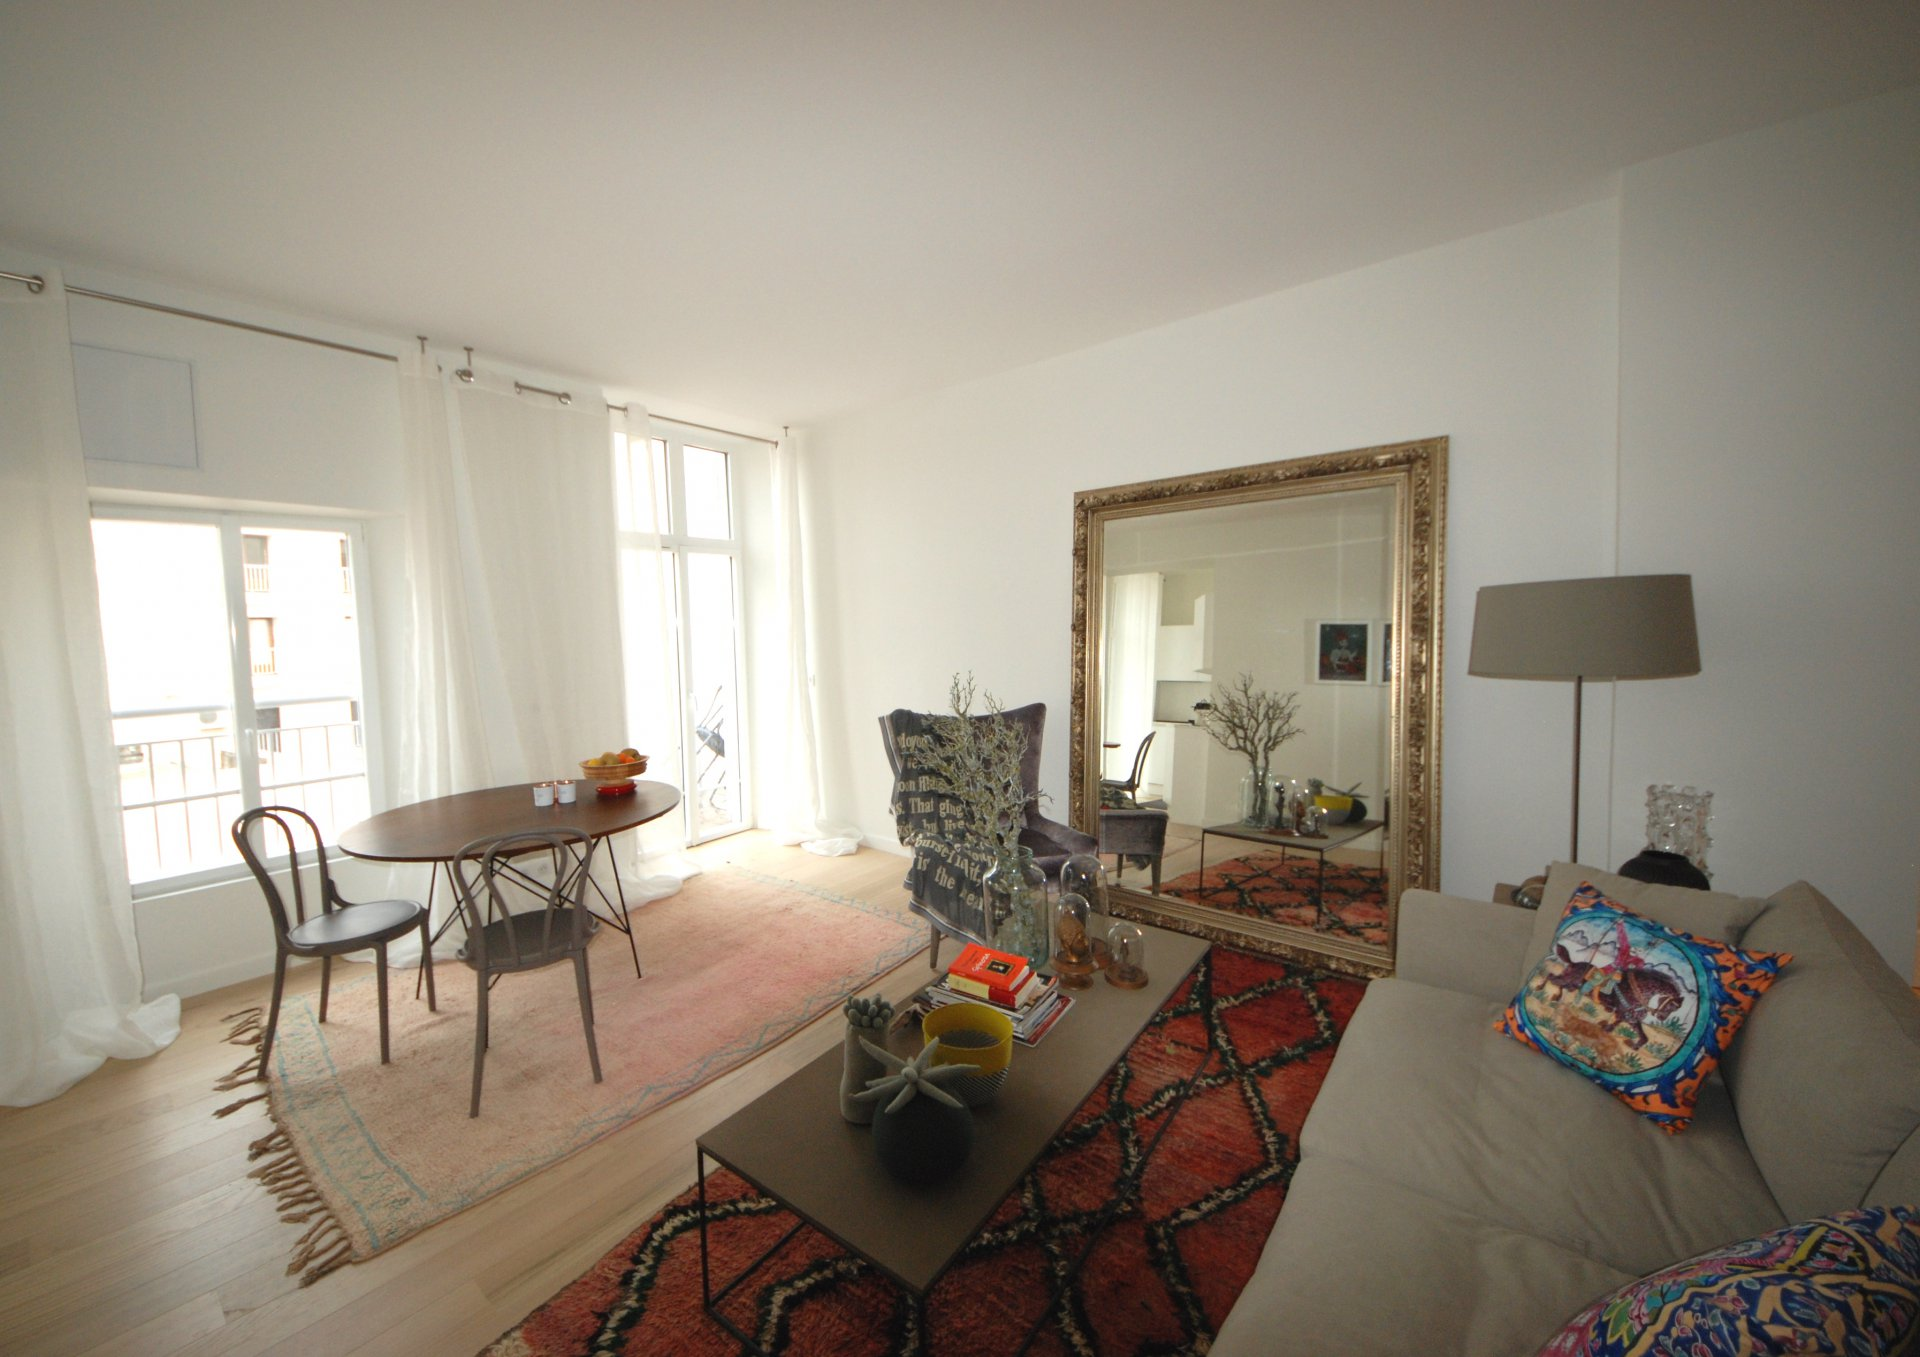 2 bedroom apartment Downtown Cannes with south terrace and parking